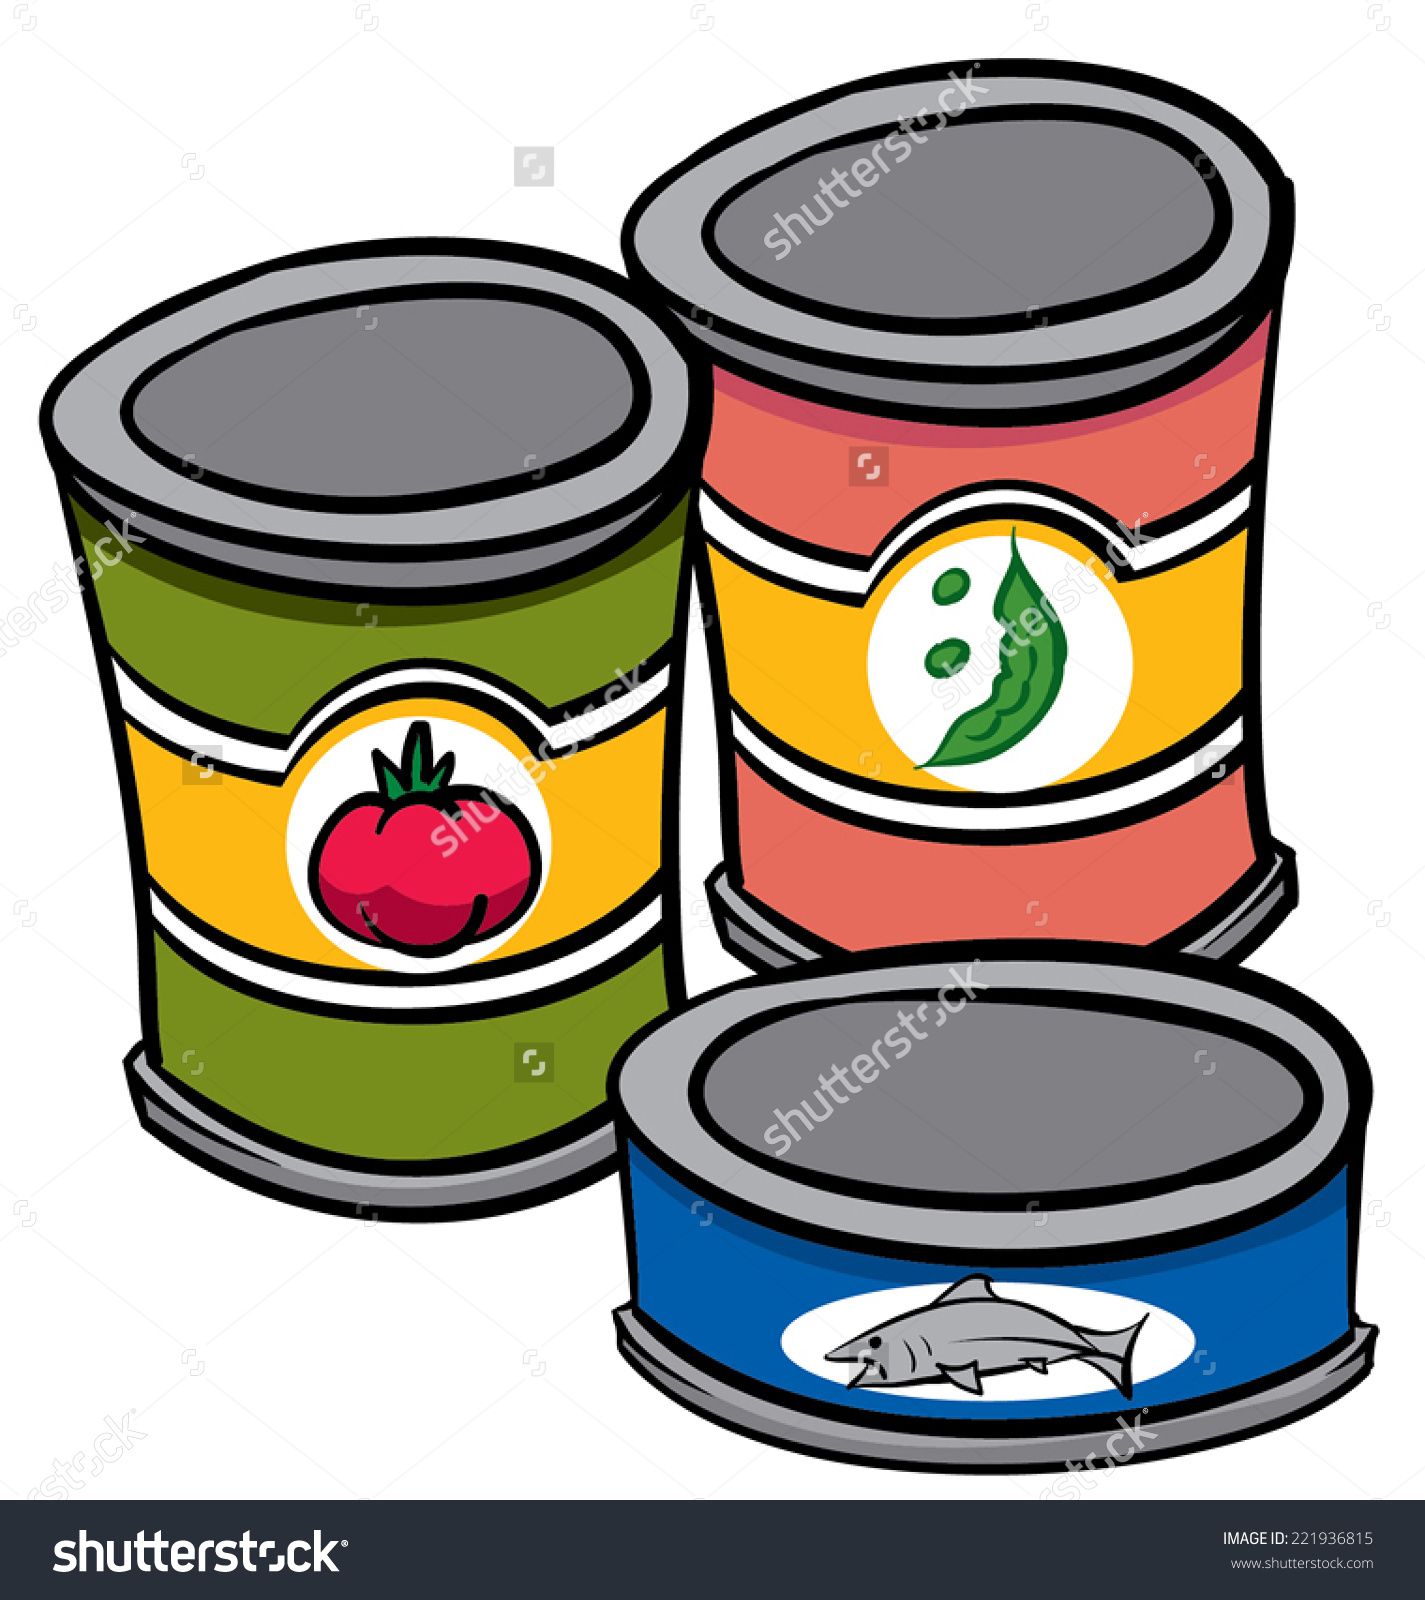 Canned Food Clipart. 52f8c53d723f40b7820390cff6ea26 .